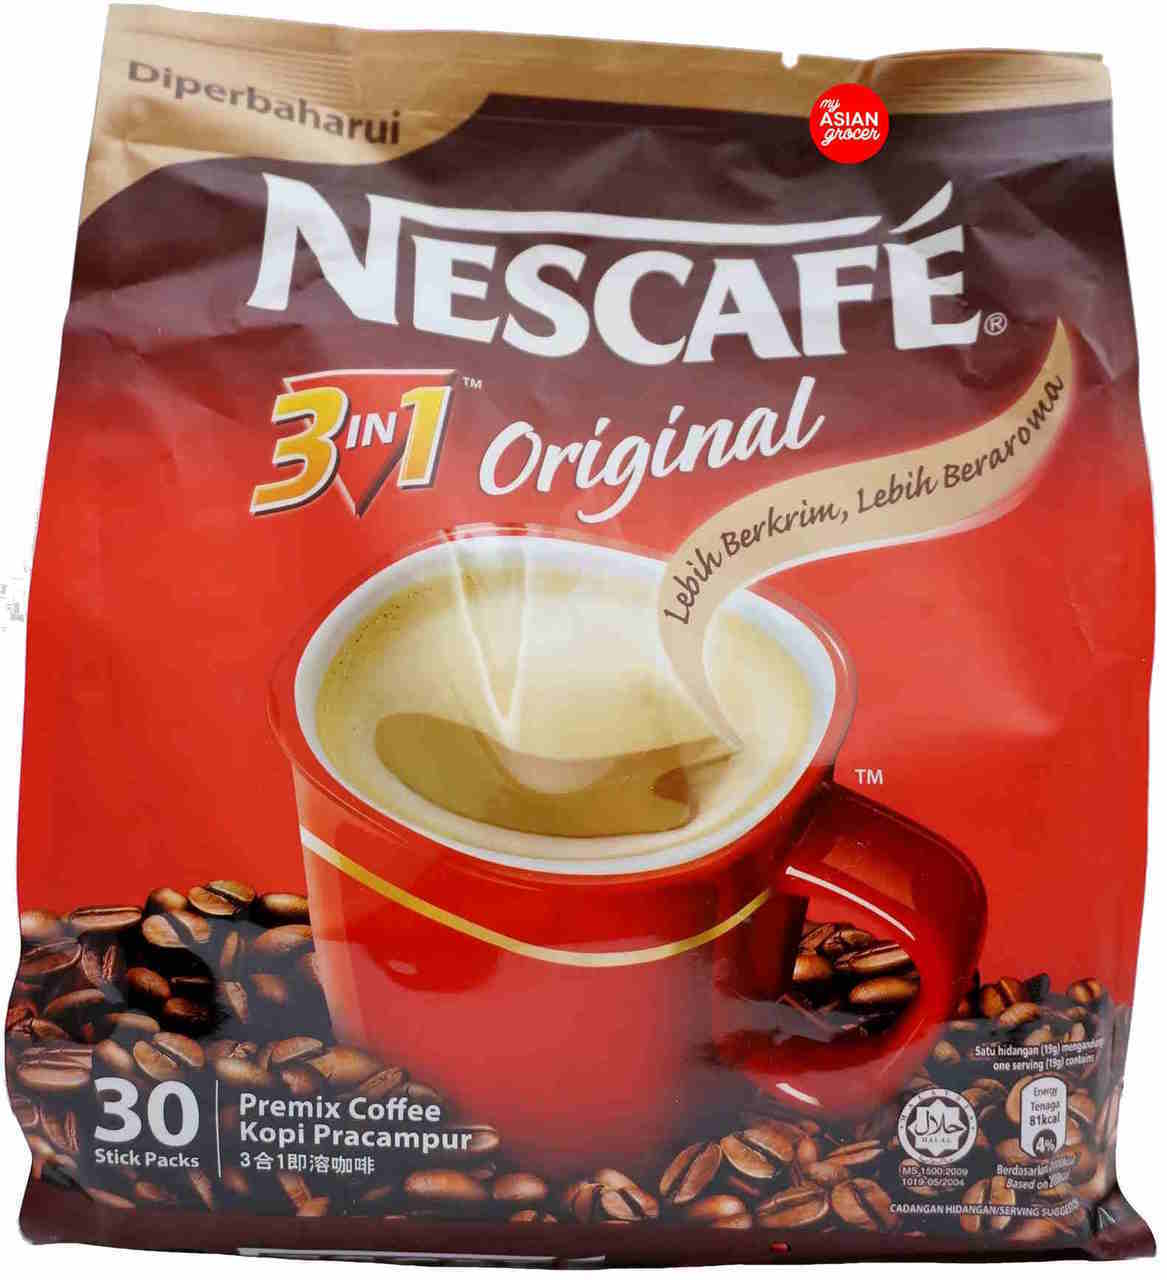 Nescafe Coffee 3 in1